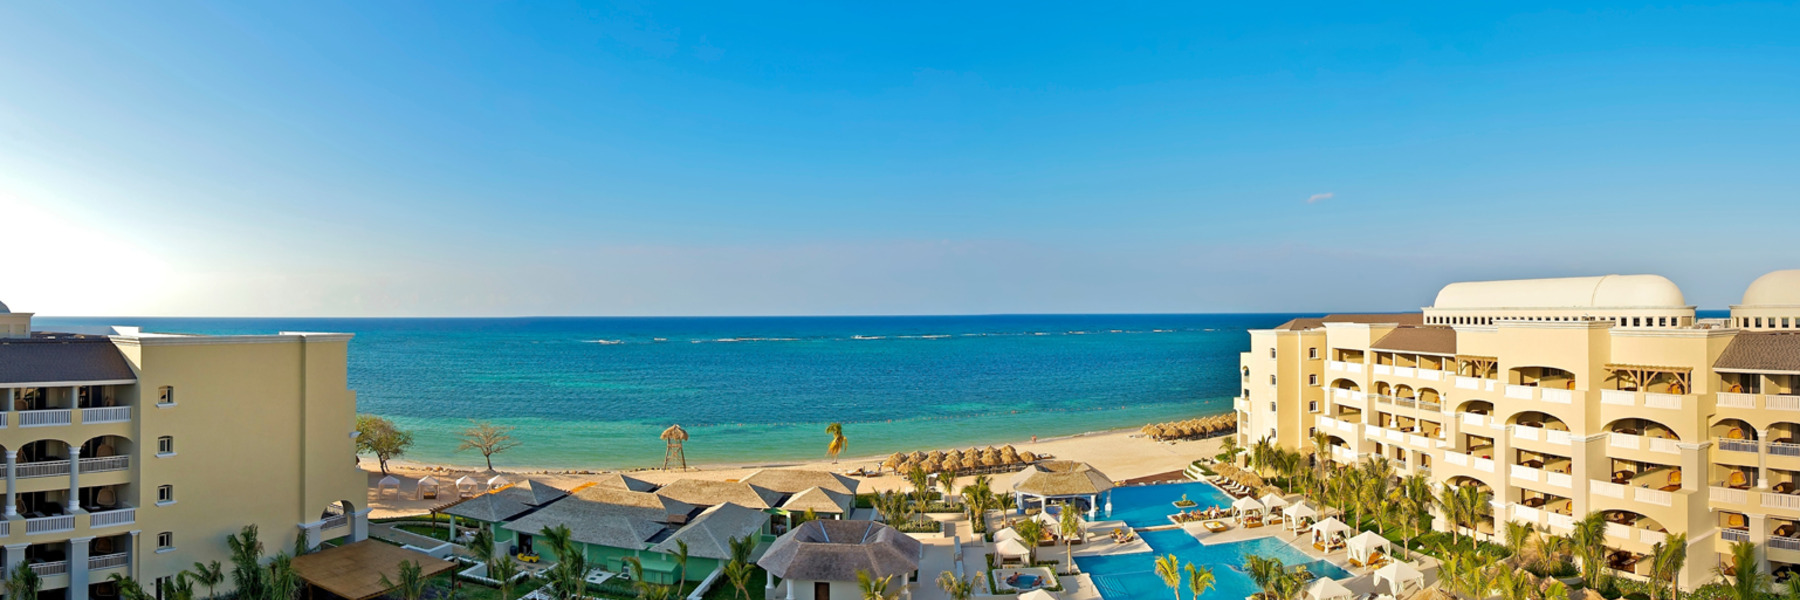 Golf Vacation Package - Iberostar Grand Rose Hall - Luxury All-Inclusive for $450 per person/per day!